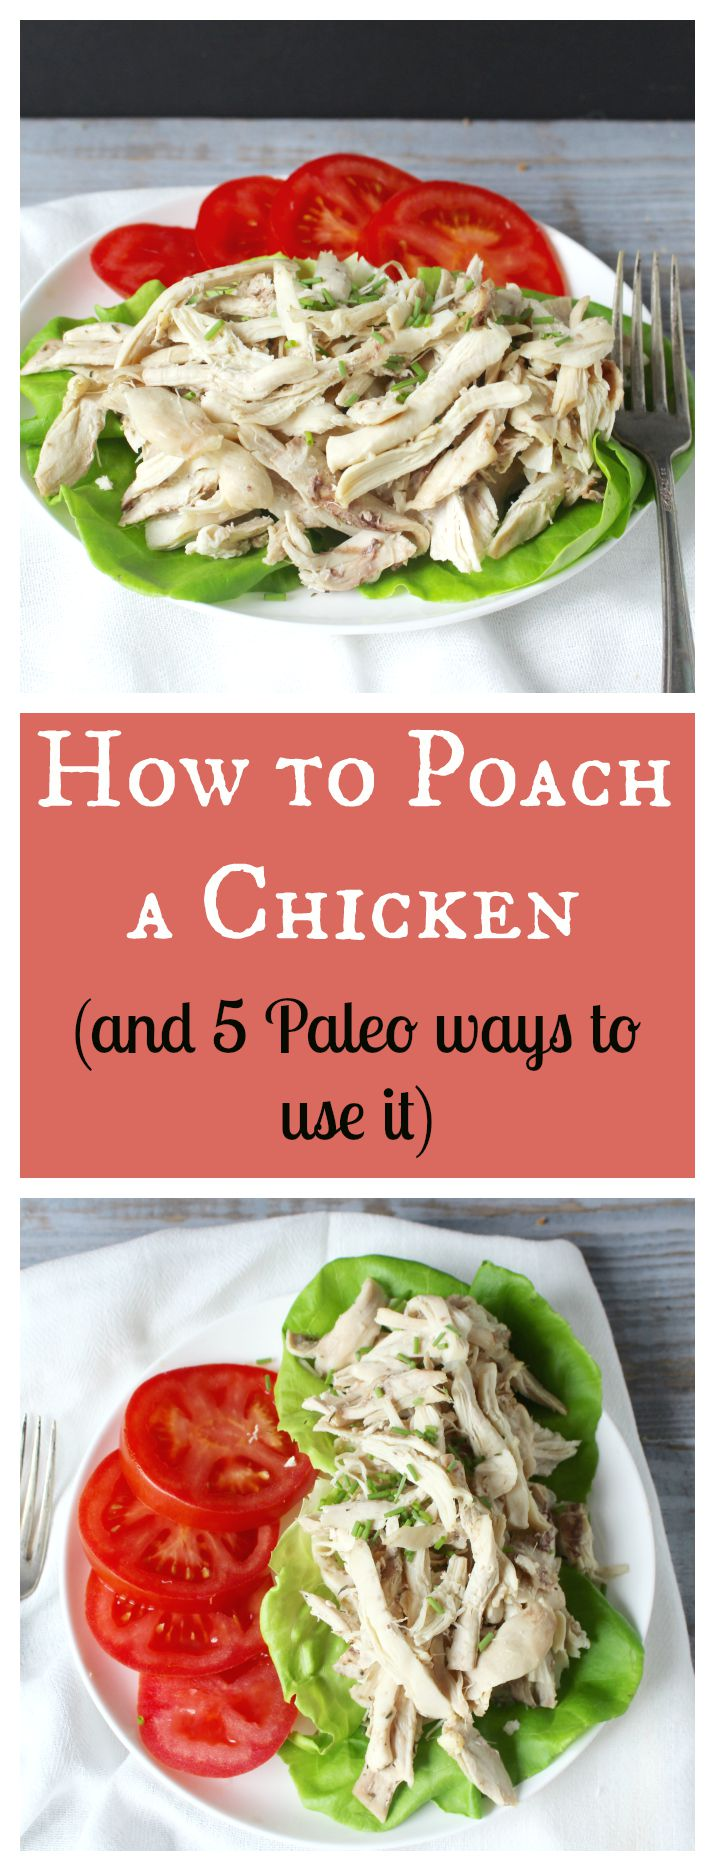 How to Poach a Chicken